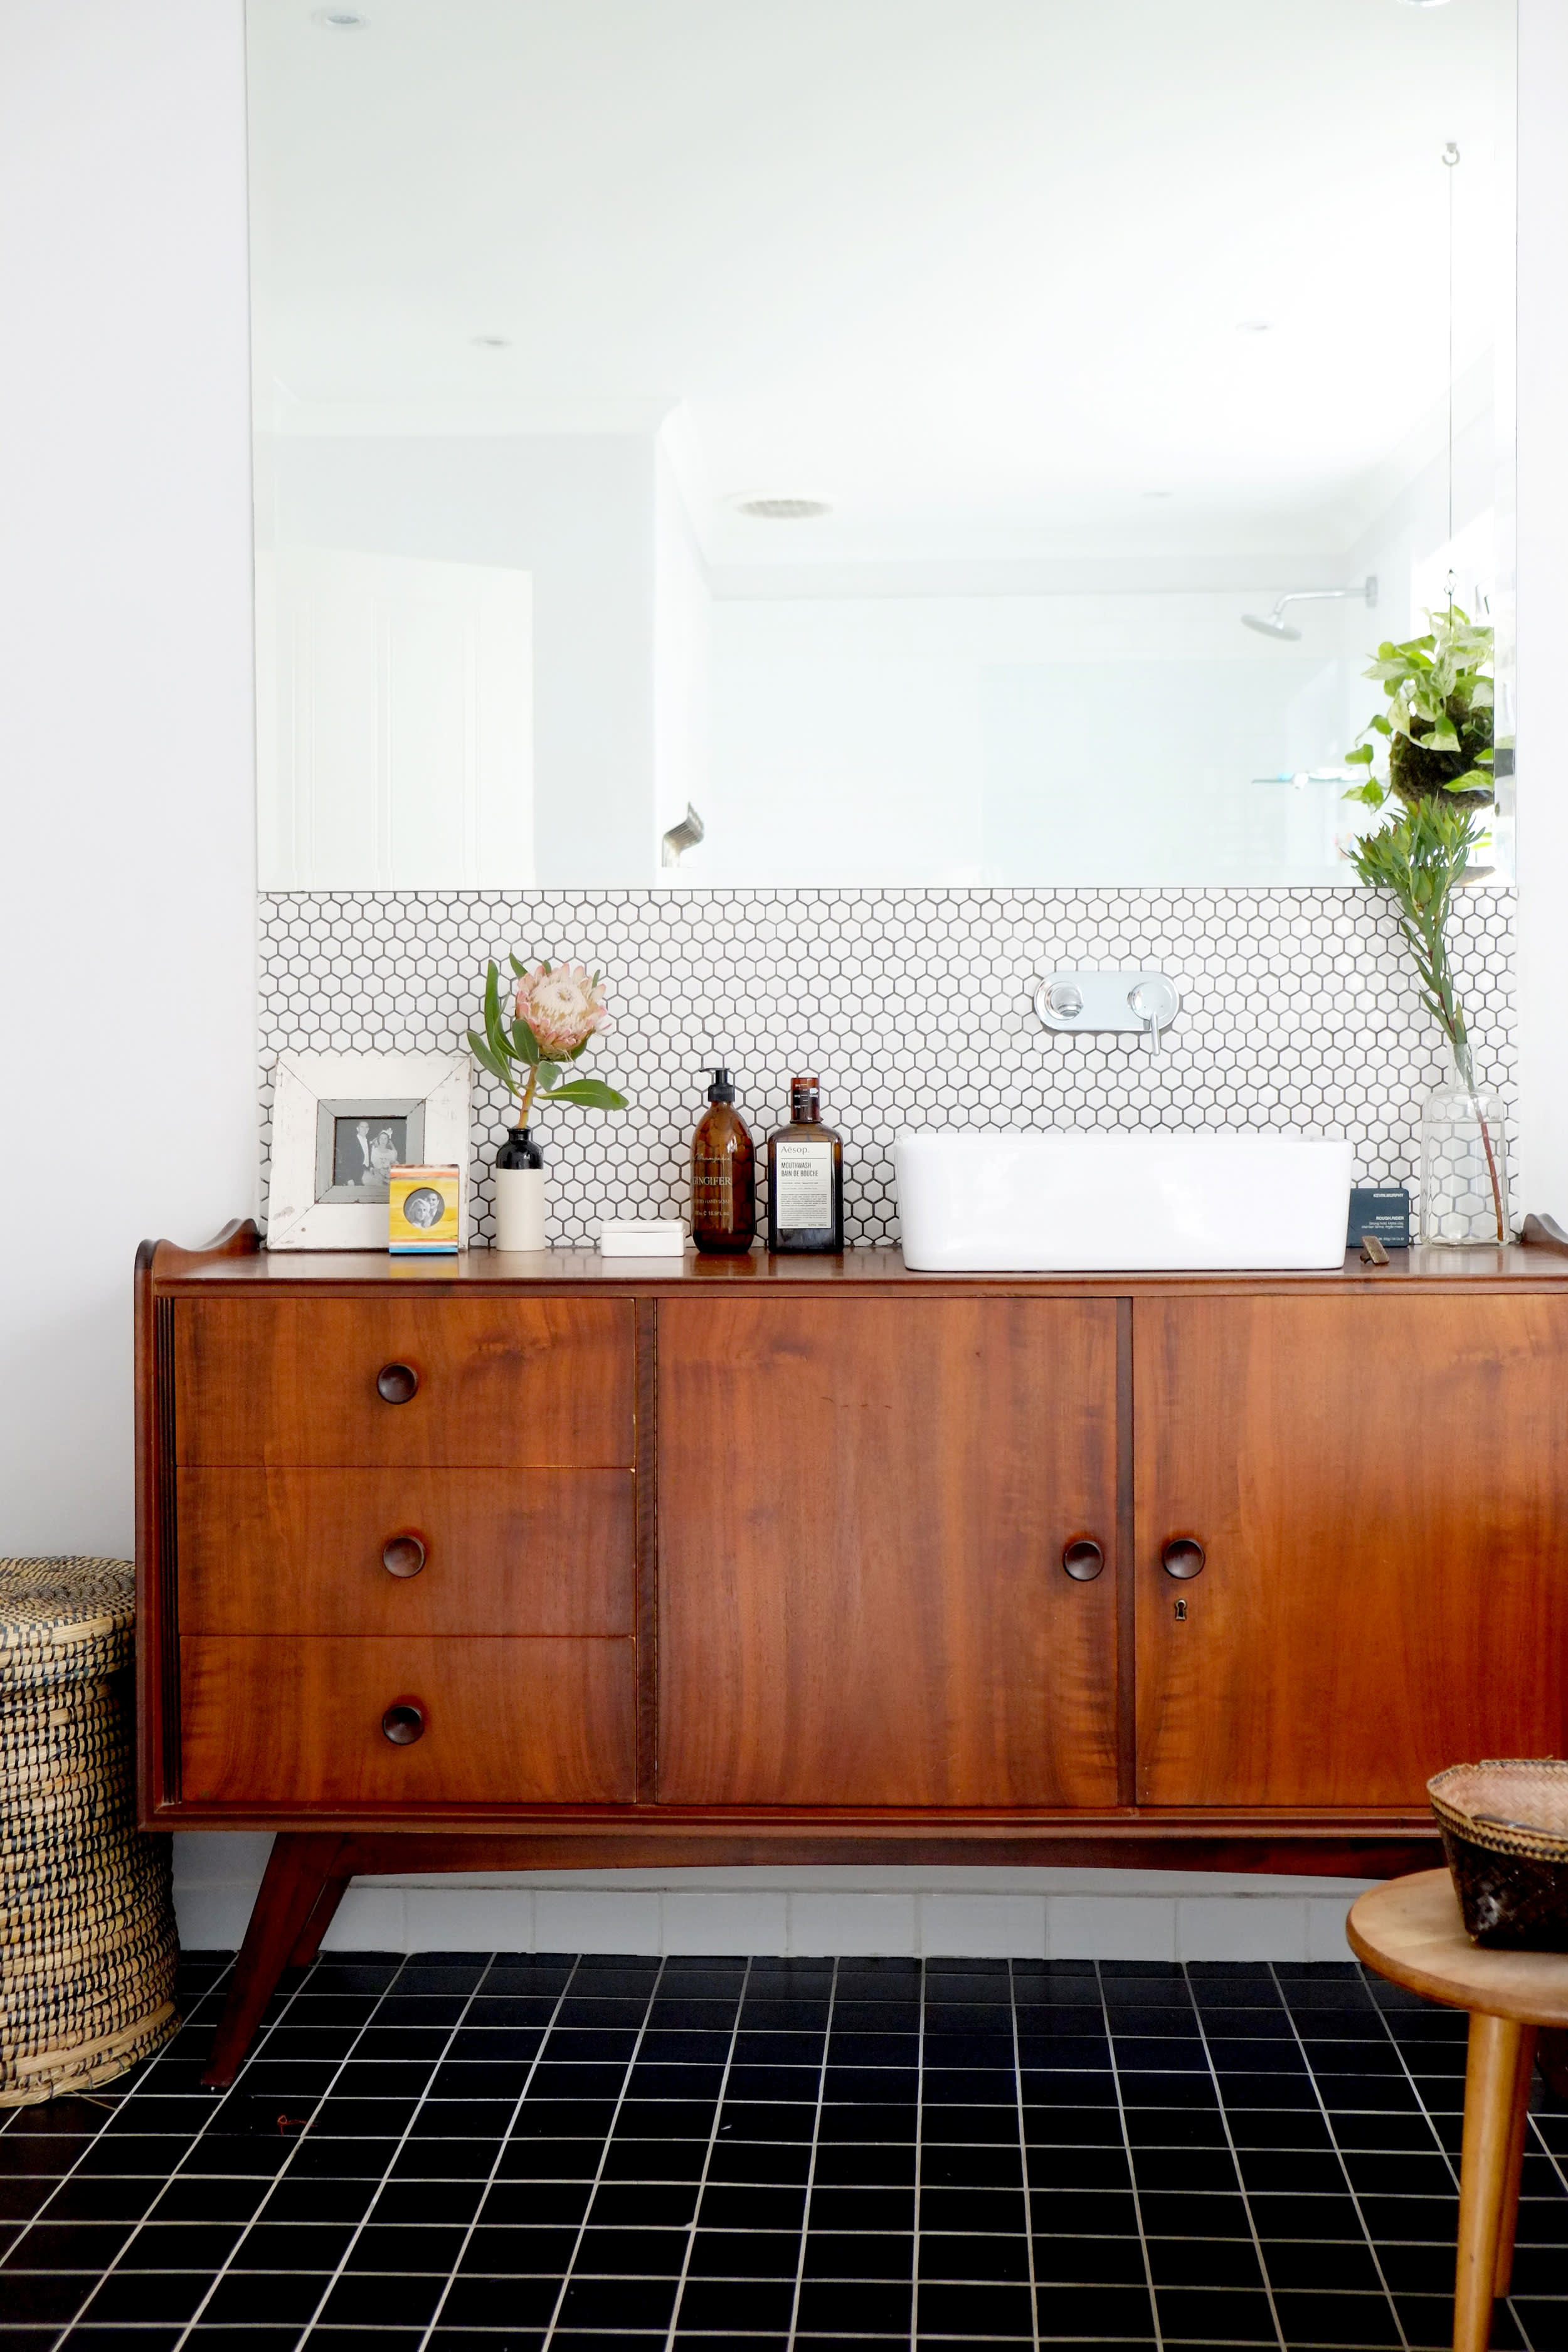 Bathroom basics stocking your first home